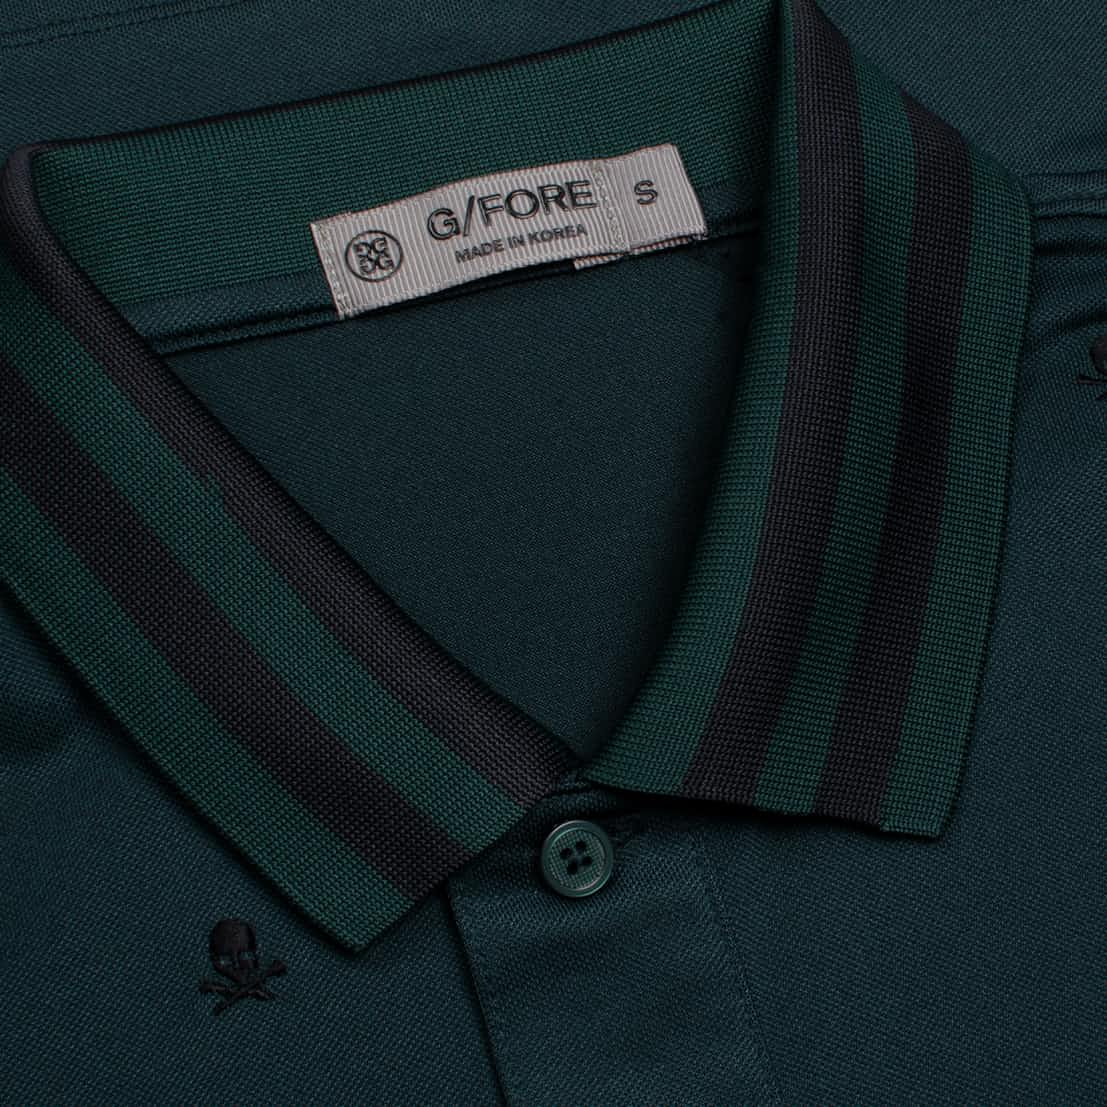 G/FORE Skull & T's Embroidered Polo Pine   Polo Shirts ...